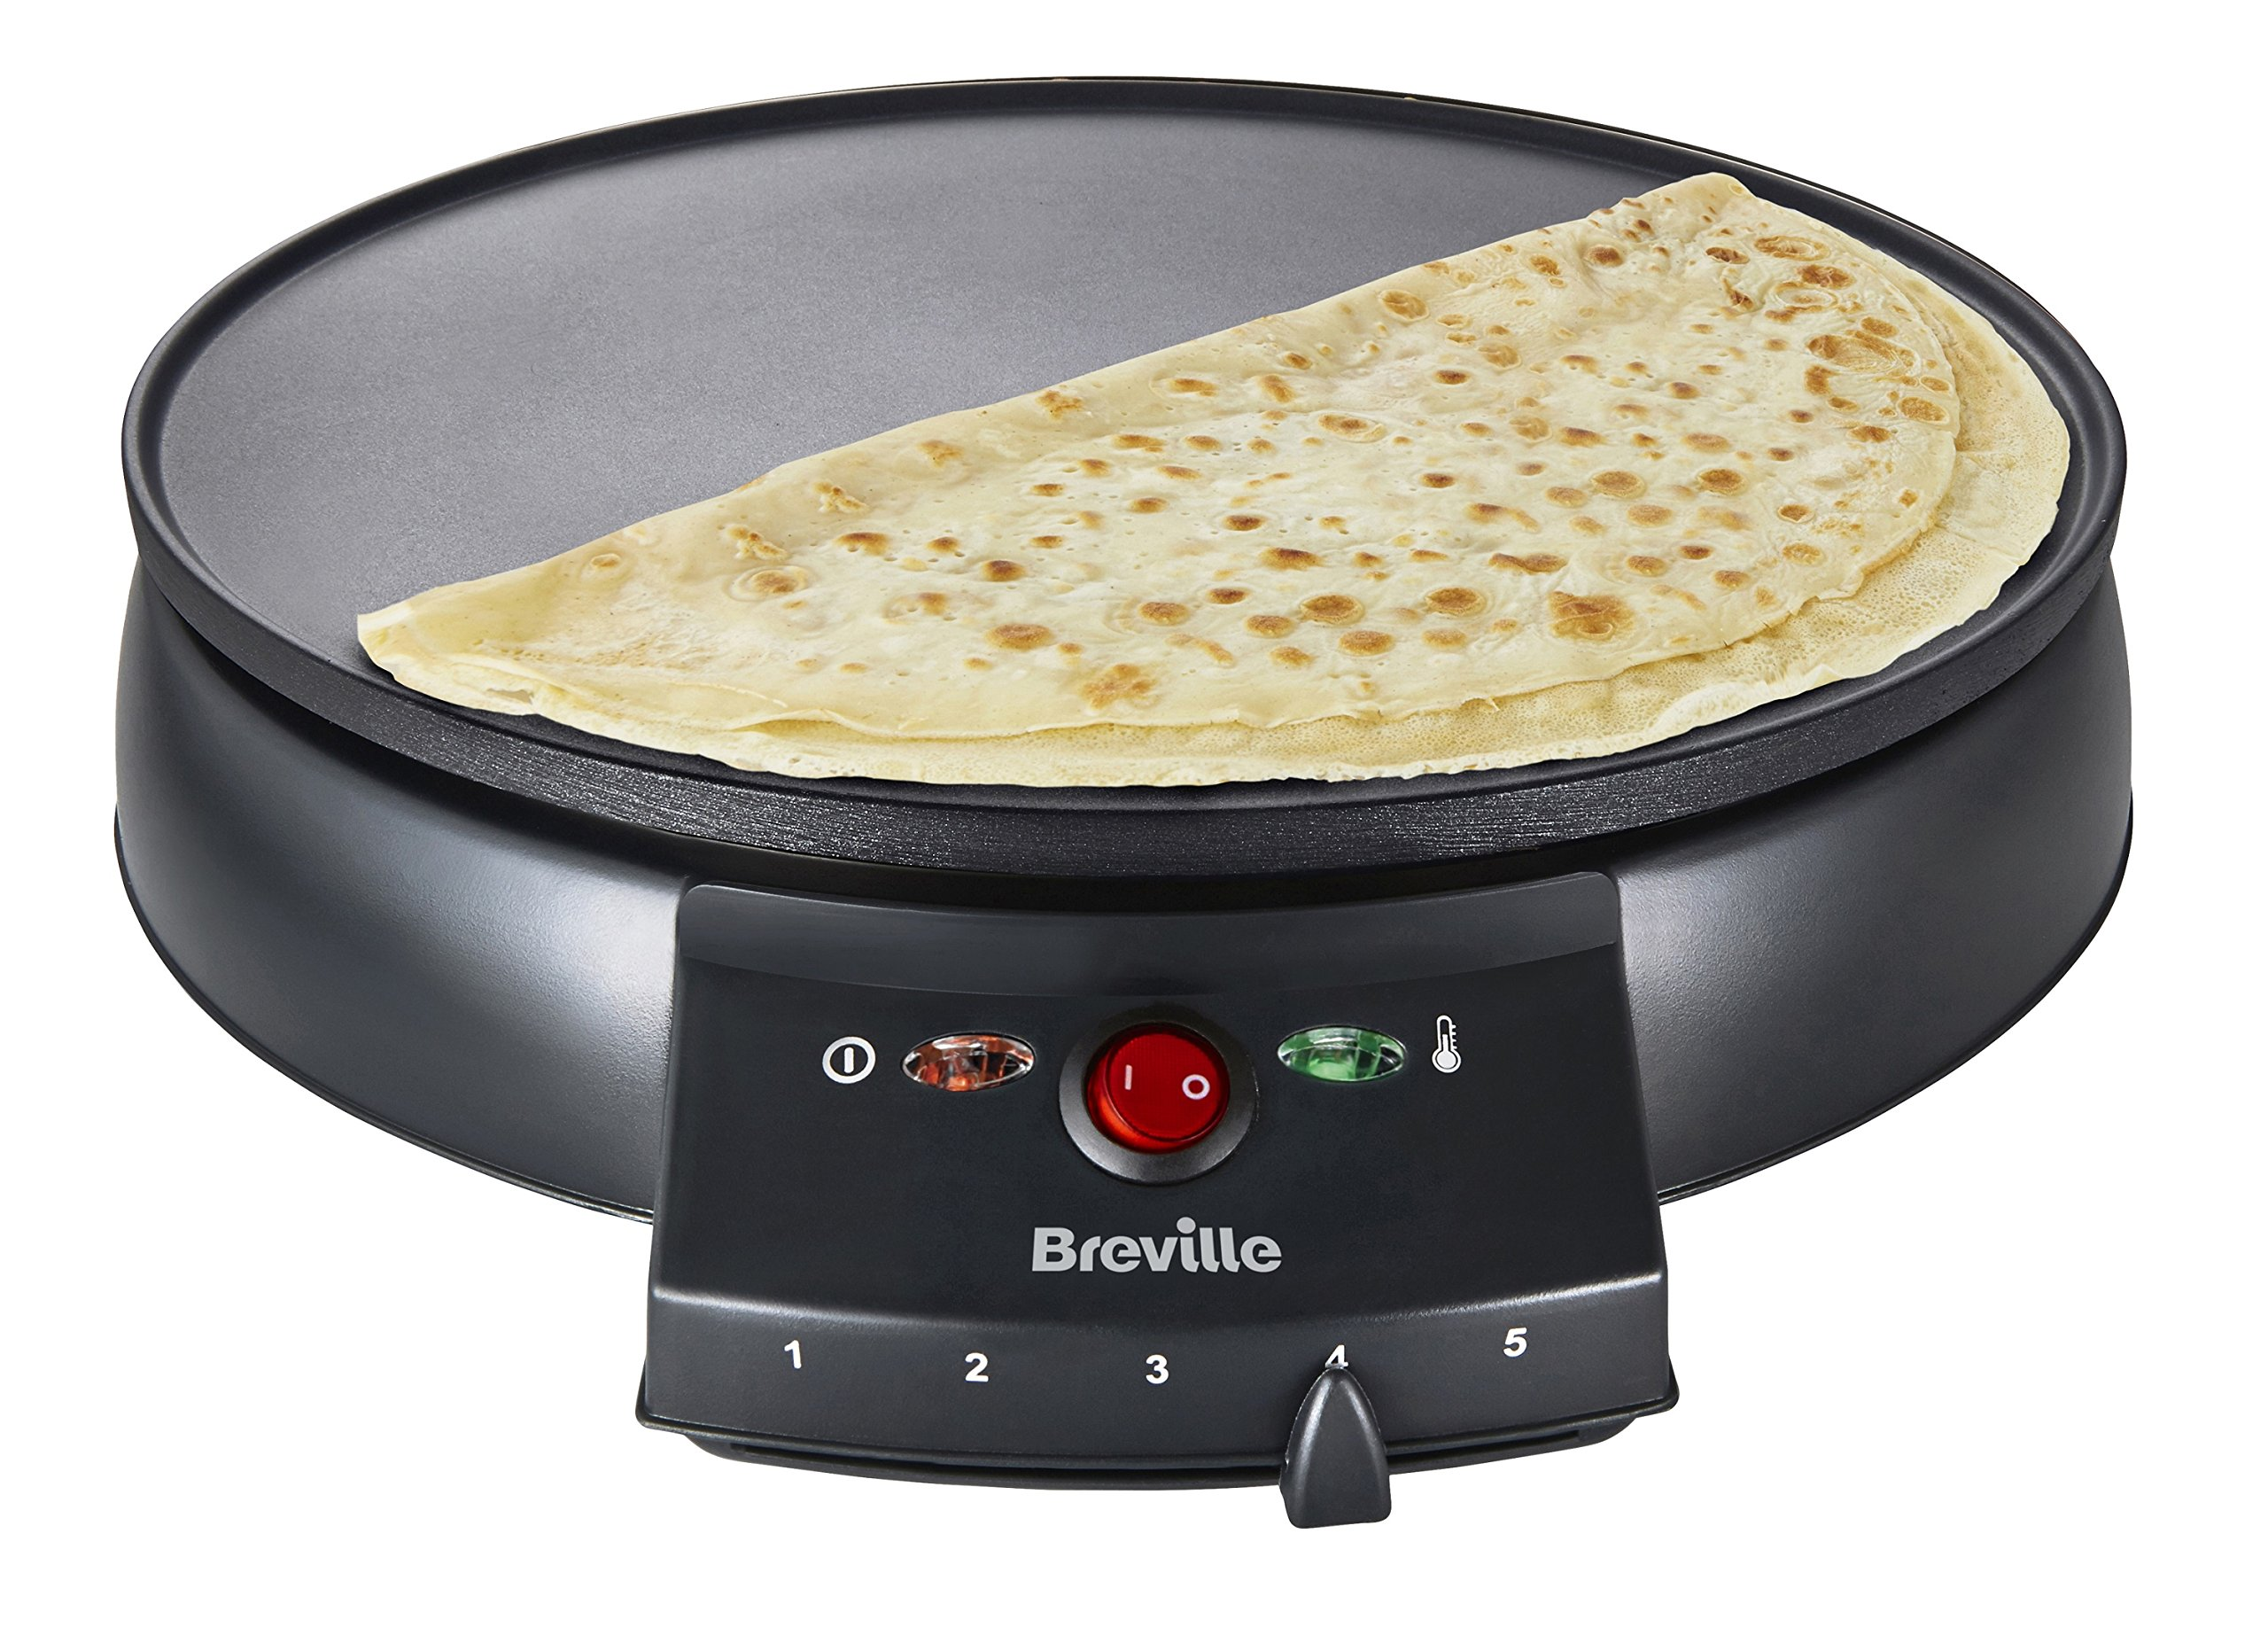 breville vtp130 traditional maker for cooking crepes. Black Bedroom Furniture Sets. Home Design Ideas